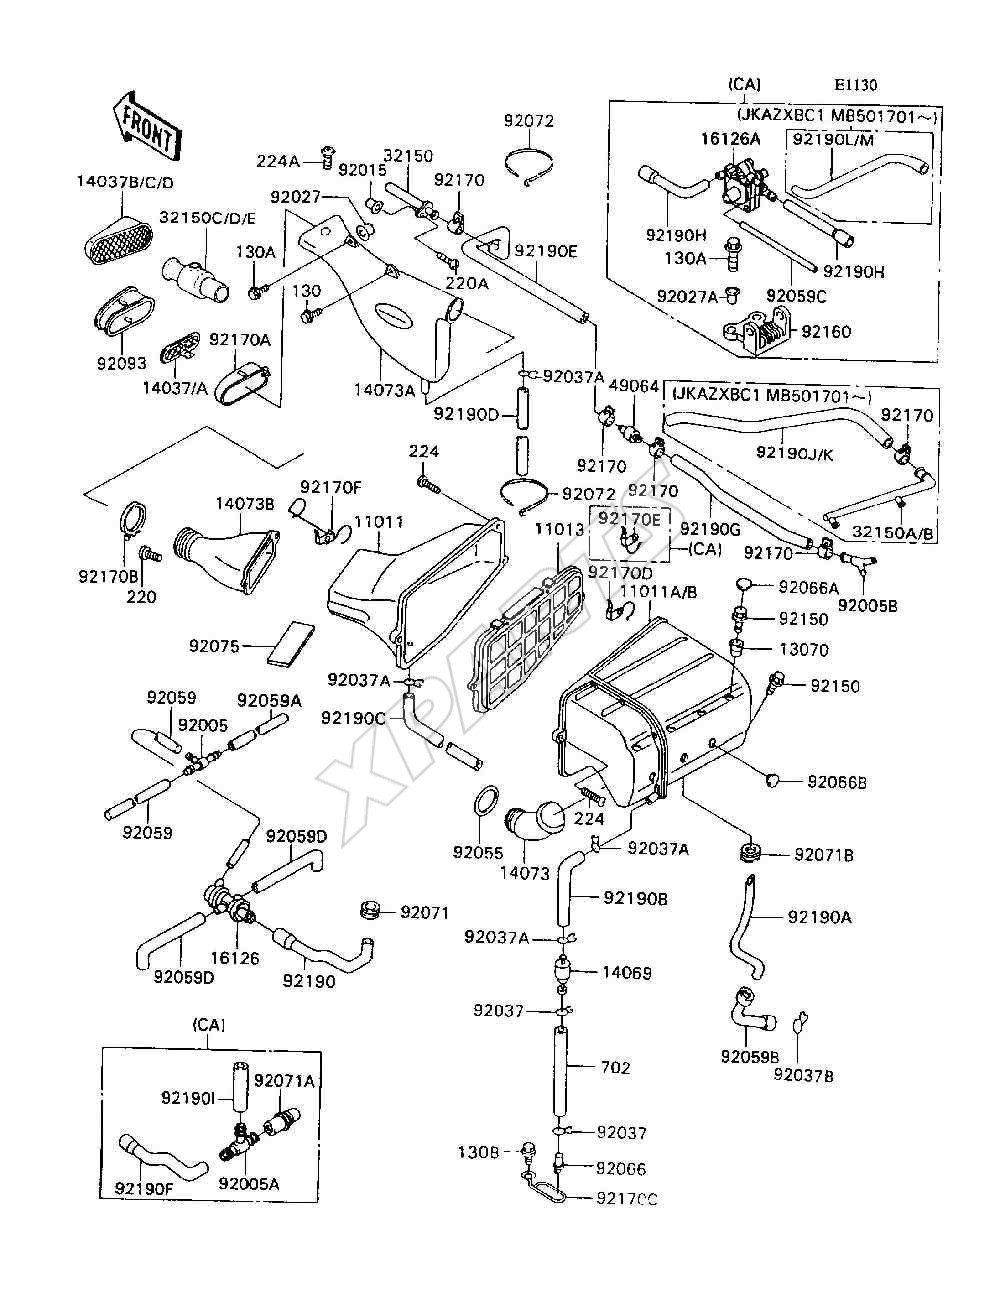 Kawasaki Ninja Parts Catalog Auto Electrical Wiring Diagram 2001 Zx9 Harness 1993